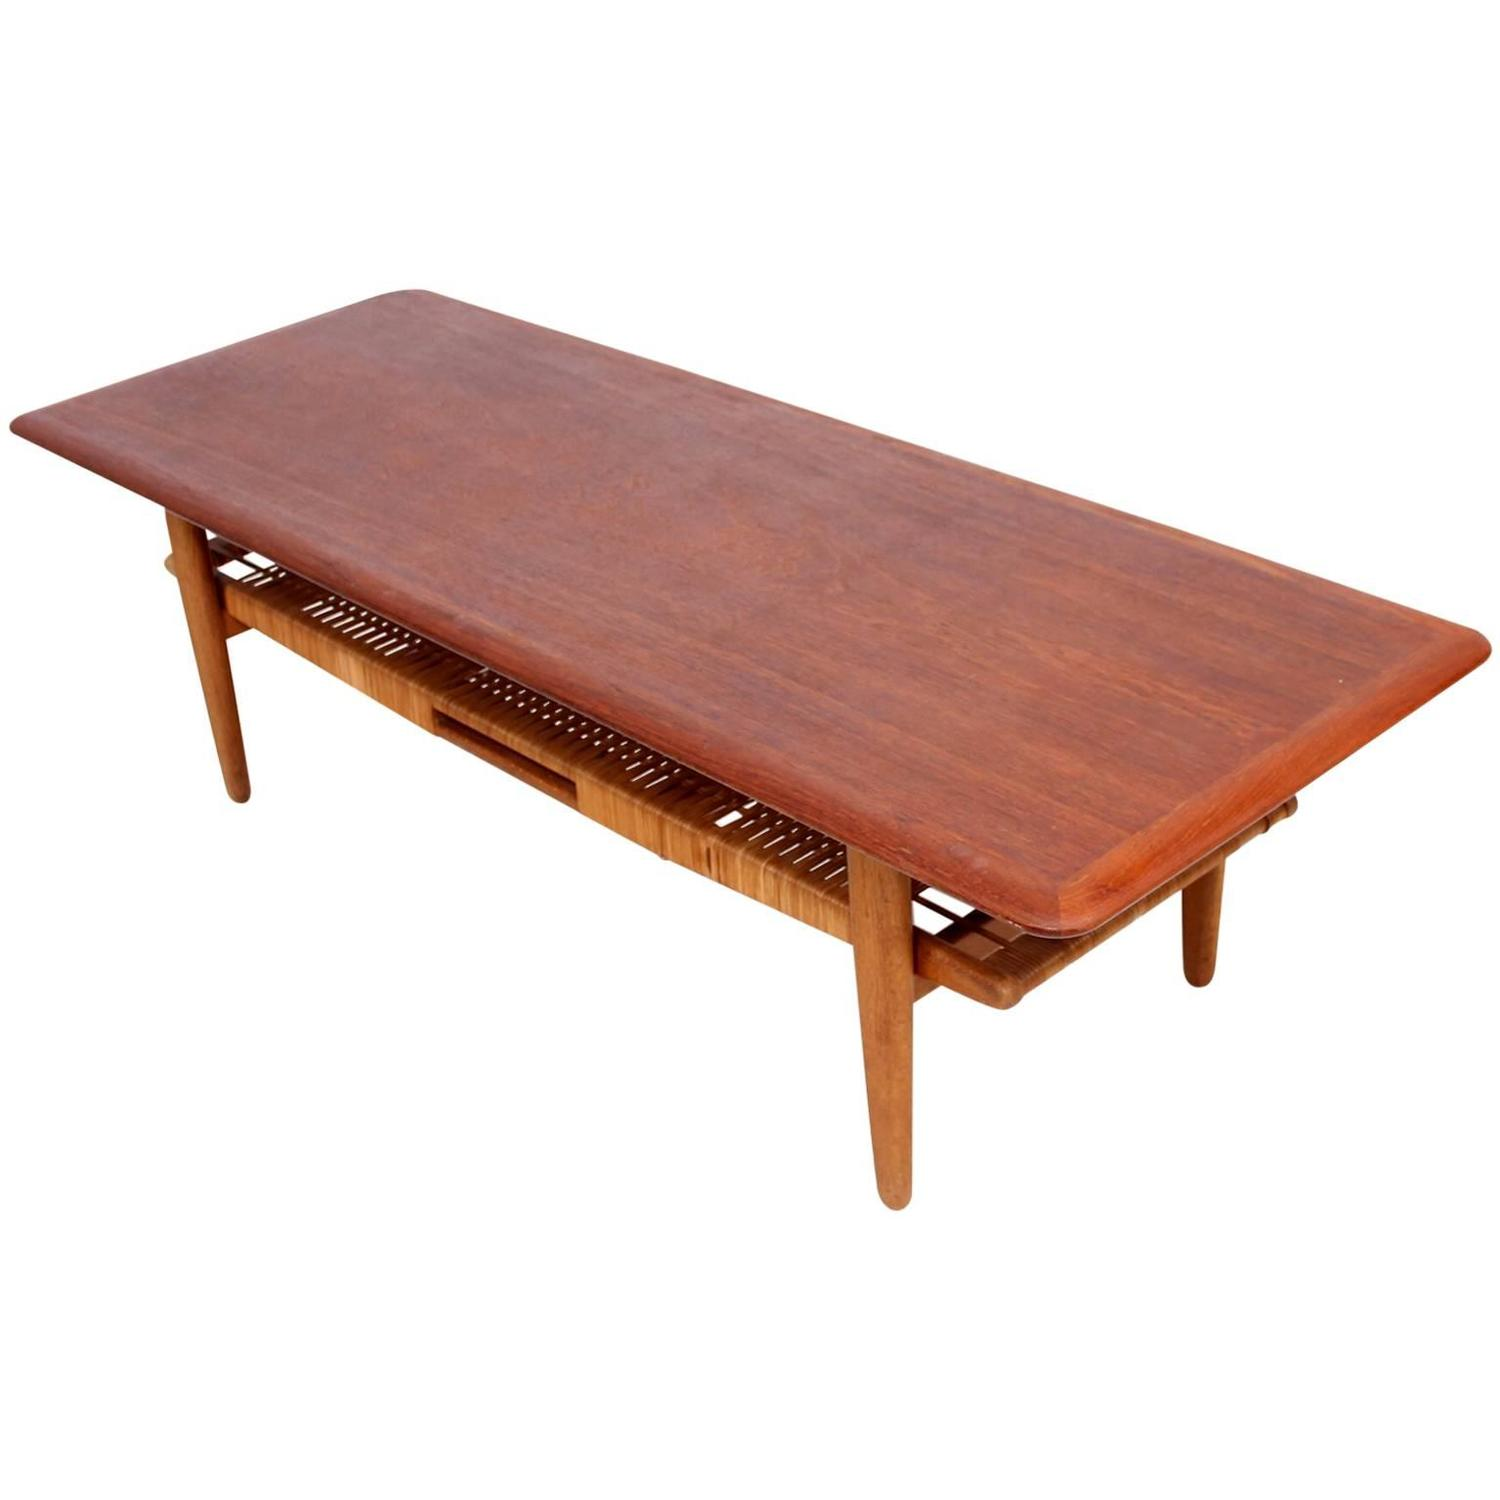 Danish modern teak coffee table cane shelve for sale at 1stdibs Modern teak coffee table